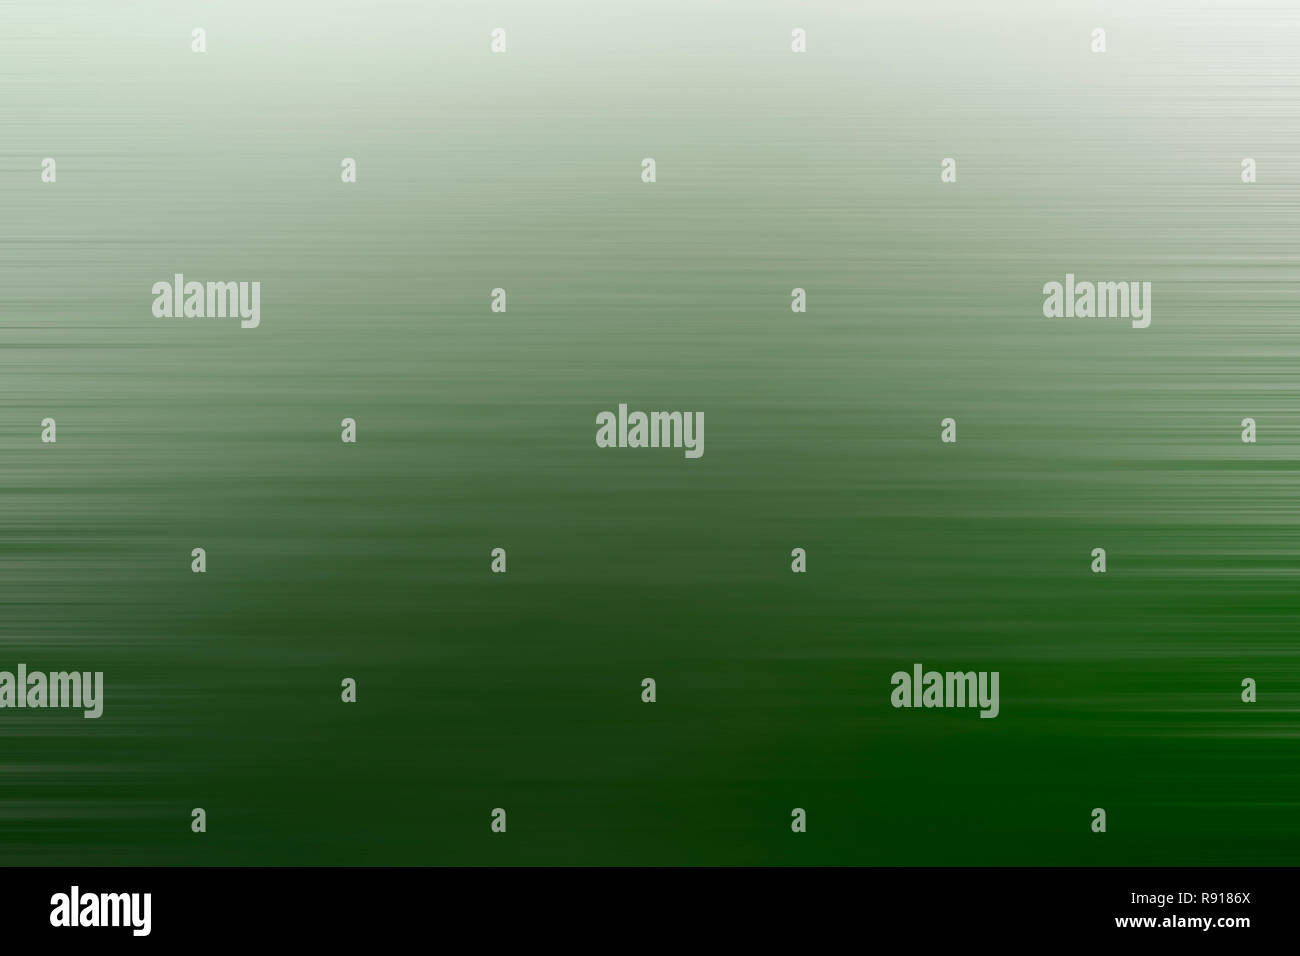 An abstract background of a green color as a graphic resource - Stock Image